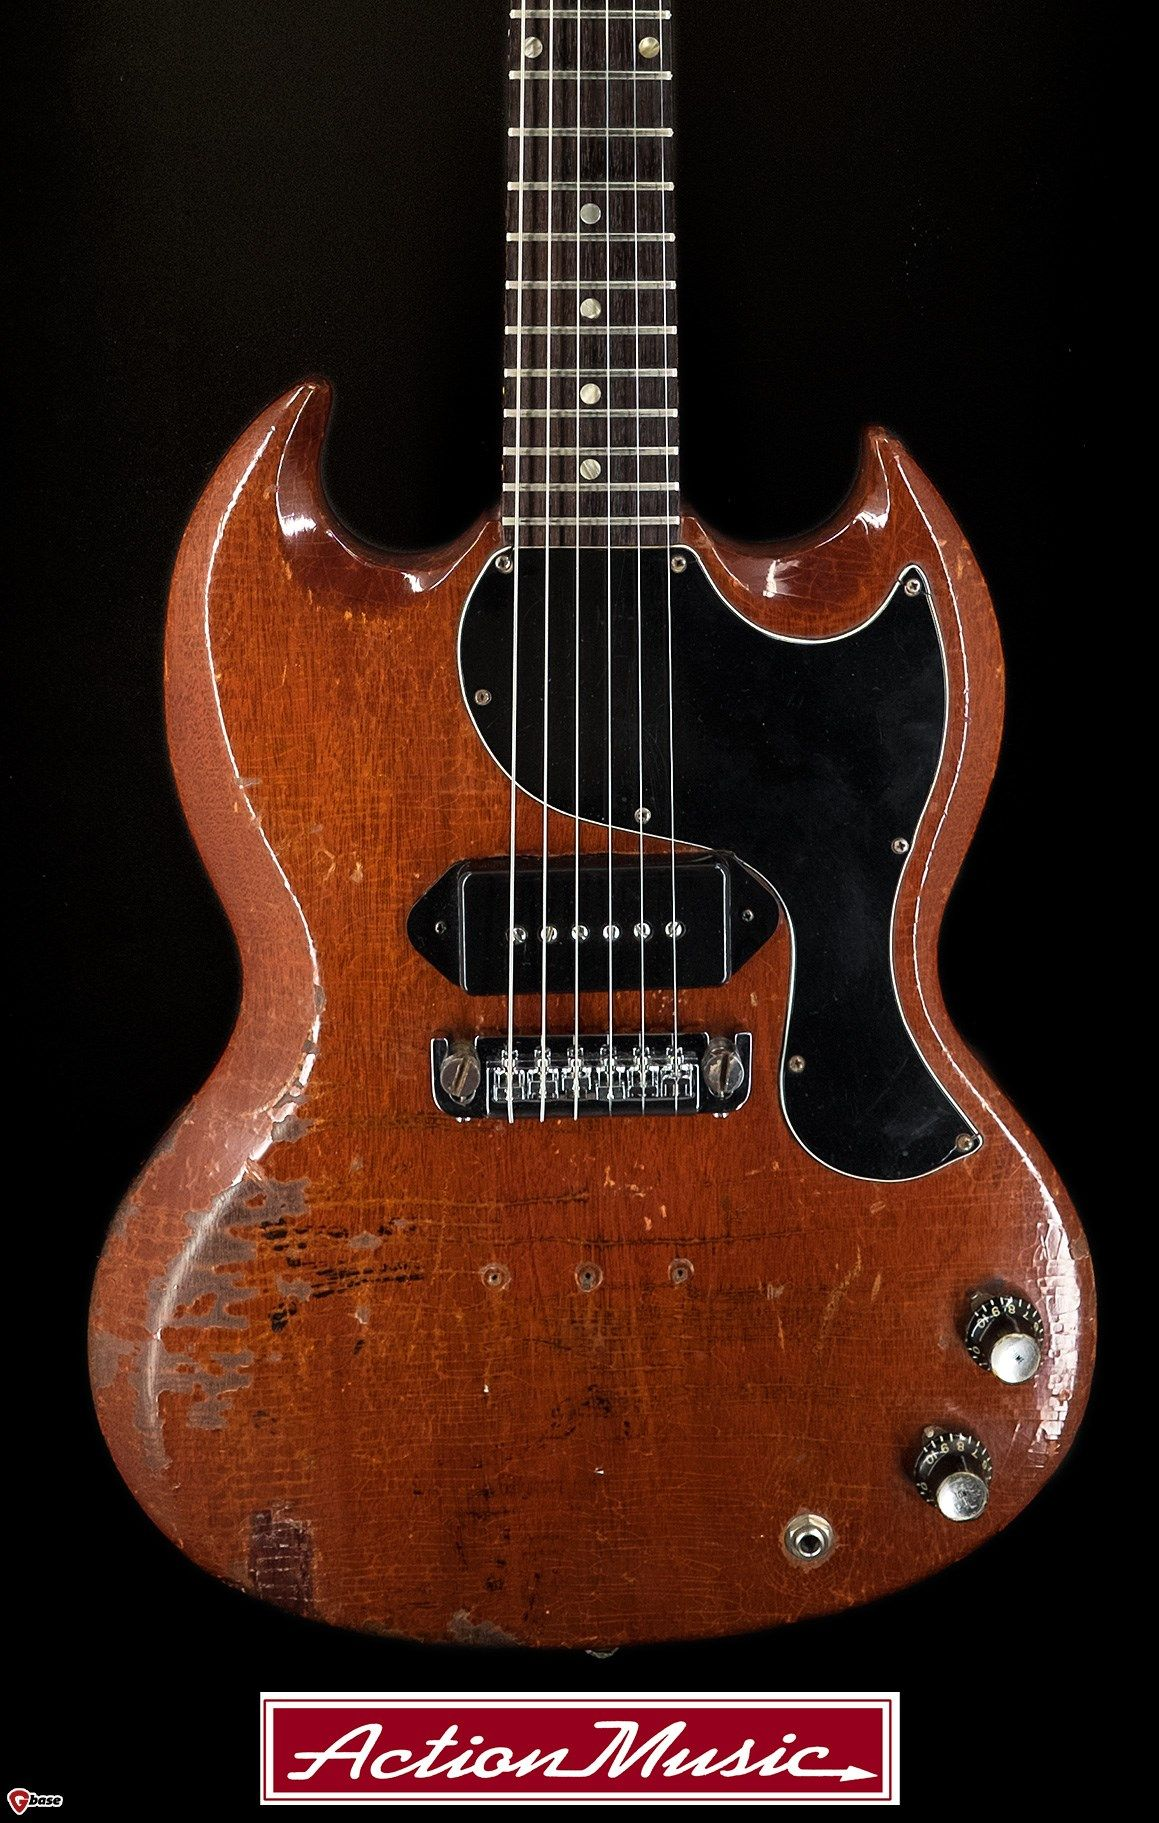 1966 Gibson Guitar Wiring Diagram Electrical Diagrams Paul Reed Smith Sg Junior Cherry Very Good 1750 00 Vintage Guitars